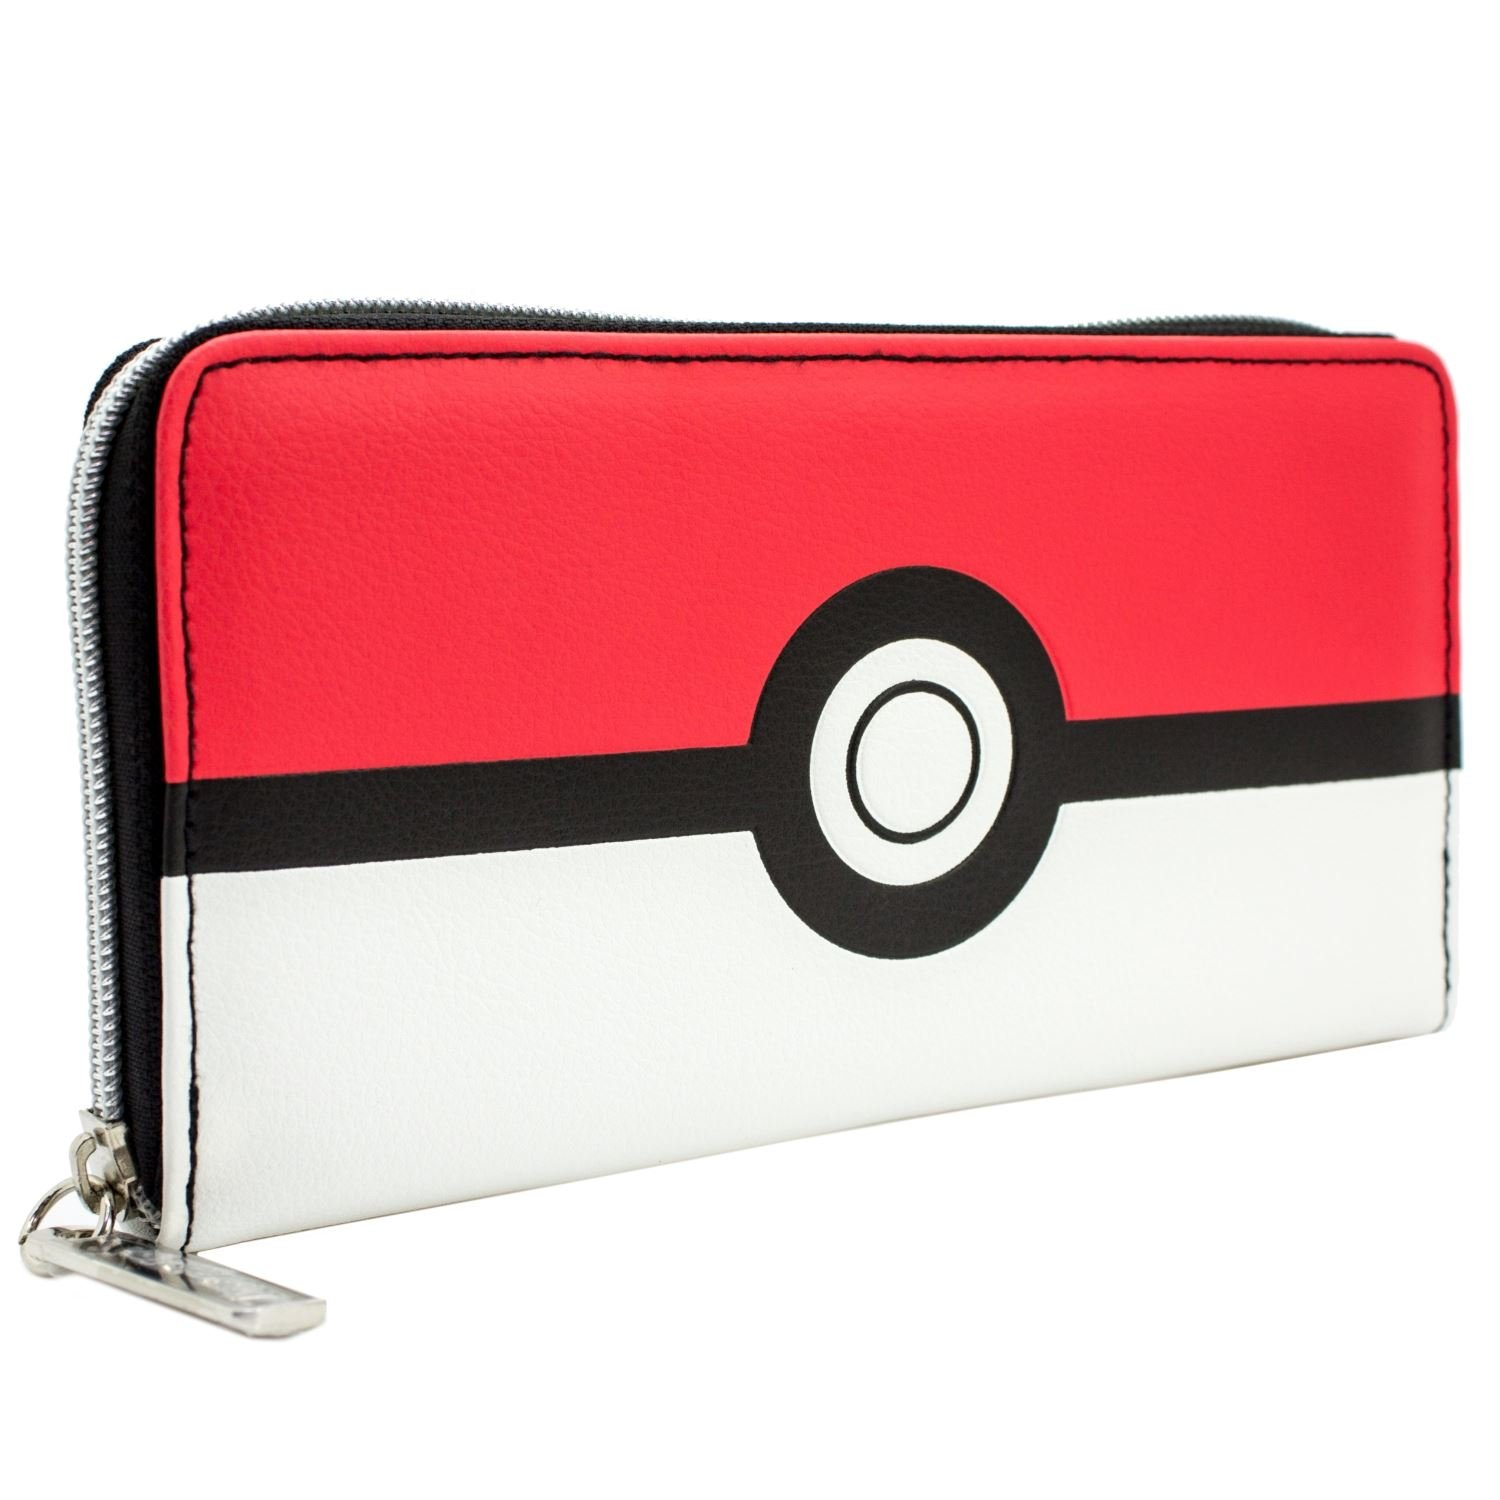 Cartera de Pokemon Diseño rojo y blanco de Pokeball Rojo: Amazon.es: Equipaje